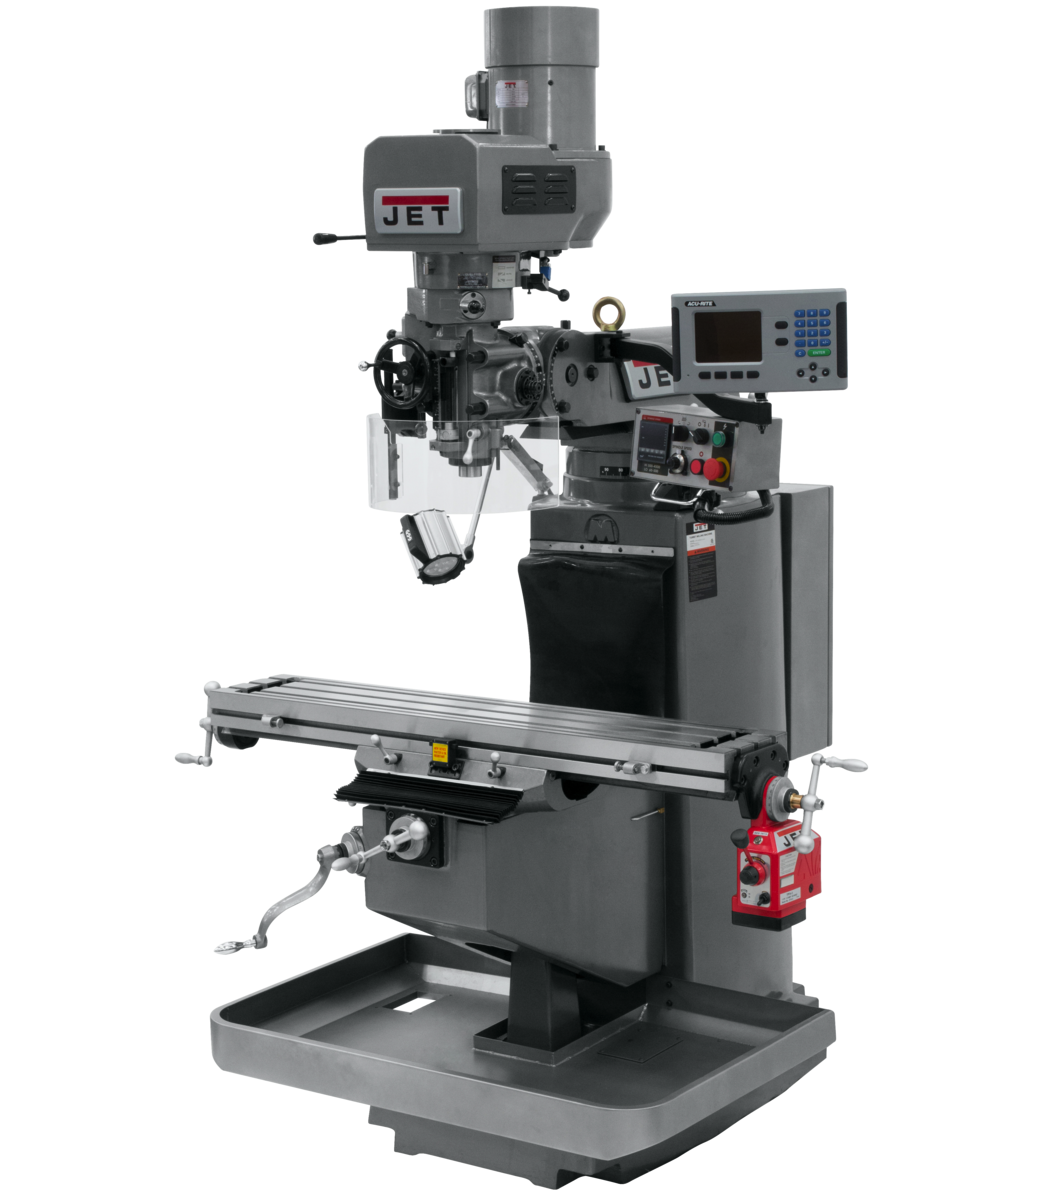 JTM-949EVS Mill With Acu-Rite 203 DRO With X-Axis Powerfeed